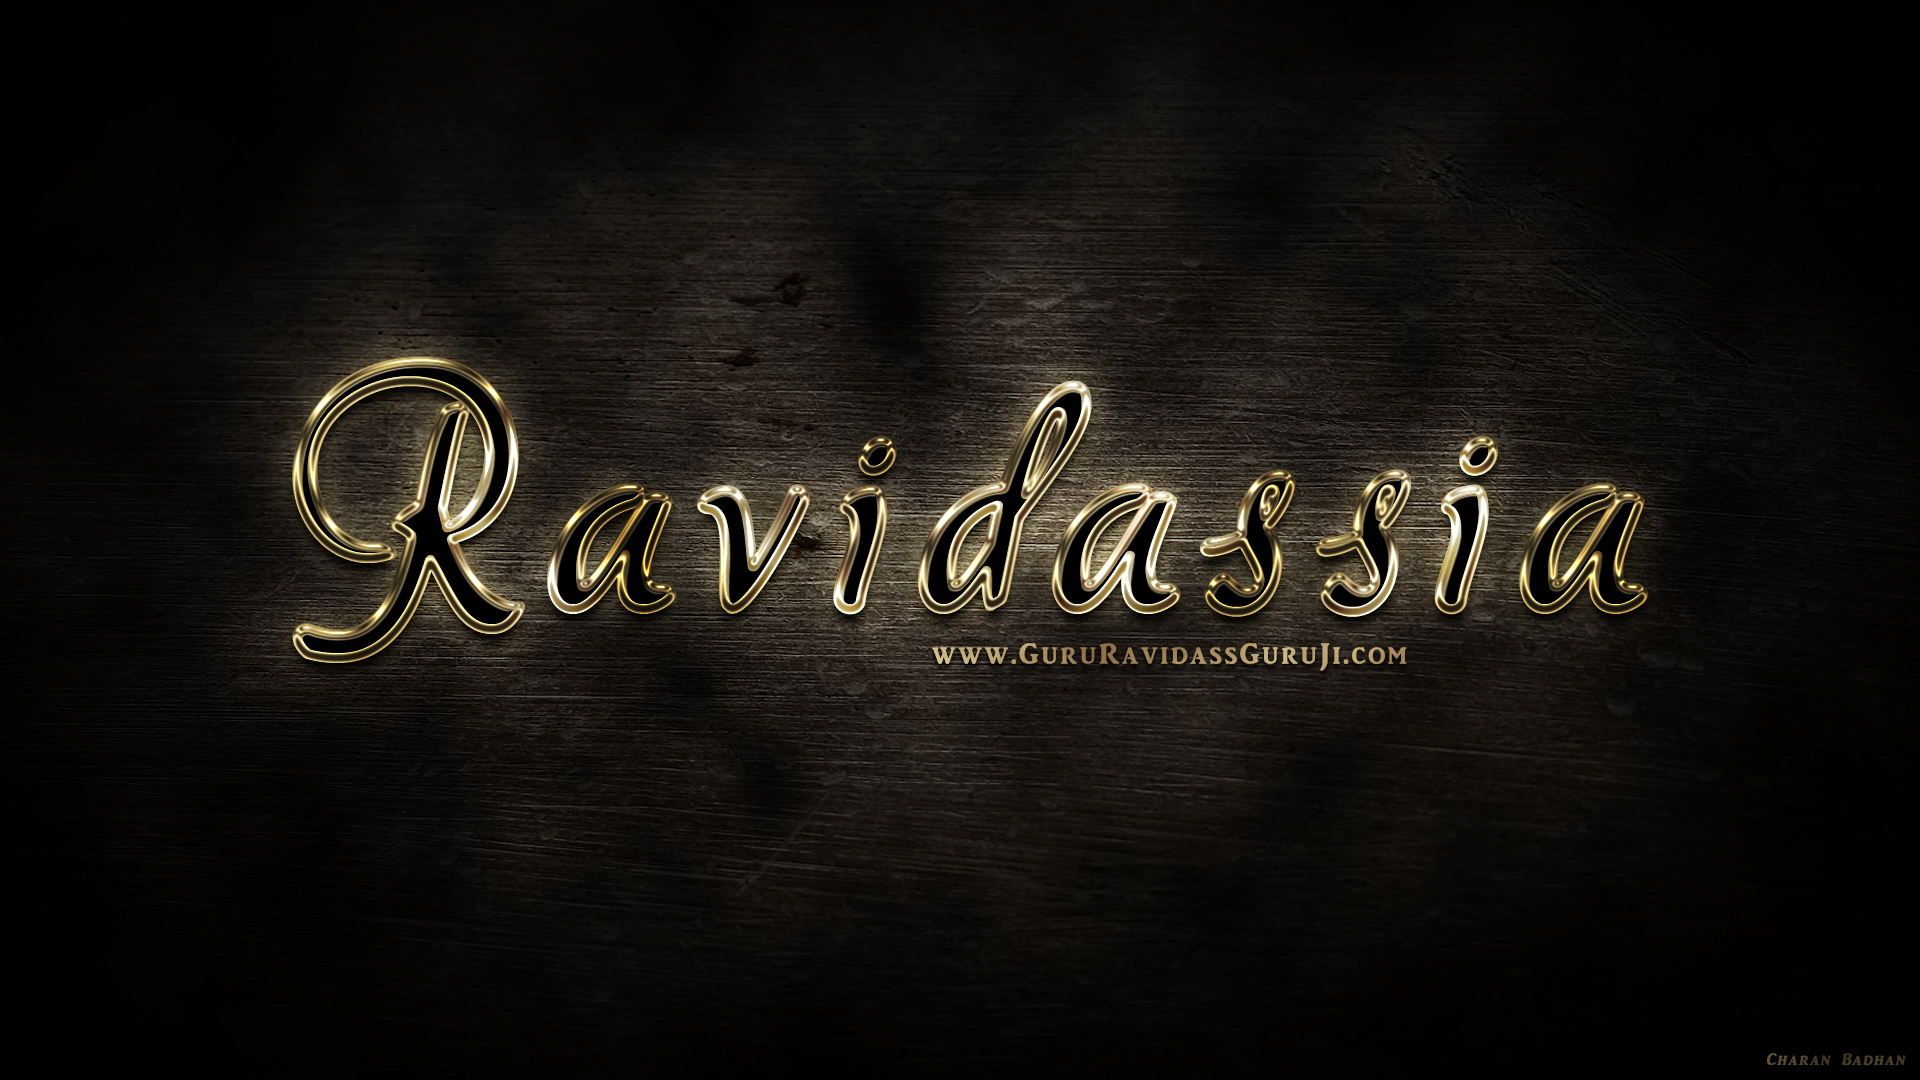 perfect golden text effect - ravidassia wallpaper